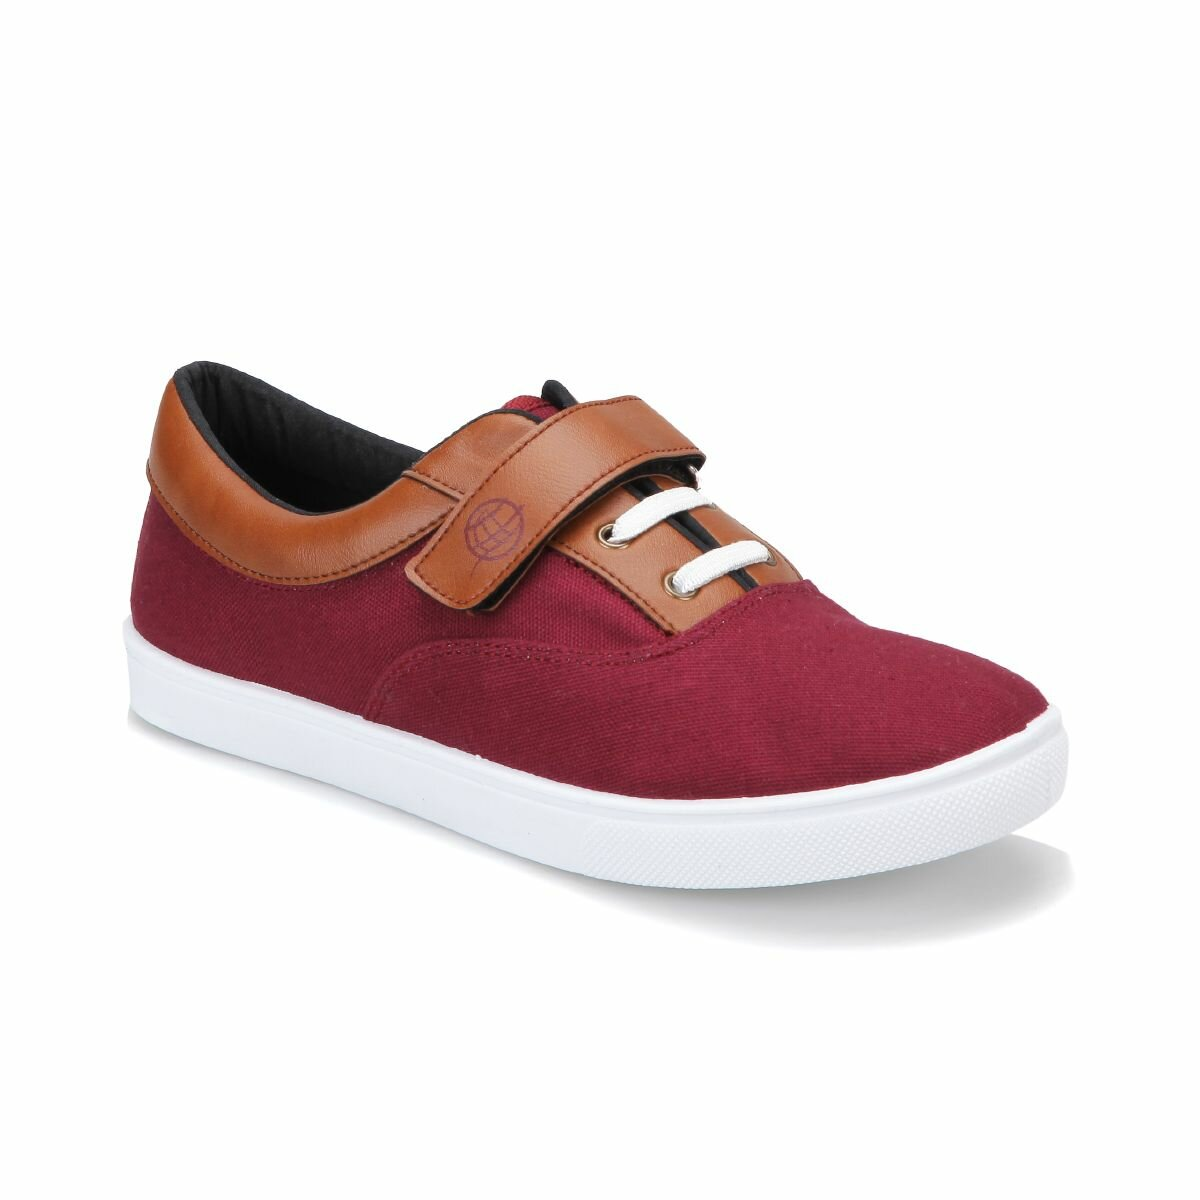 FLO PNM309.GA Burgundy Male Child Sneaker Shoes Panama Club